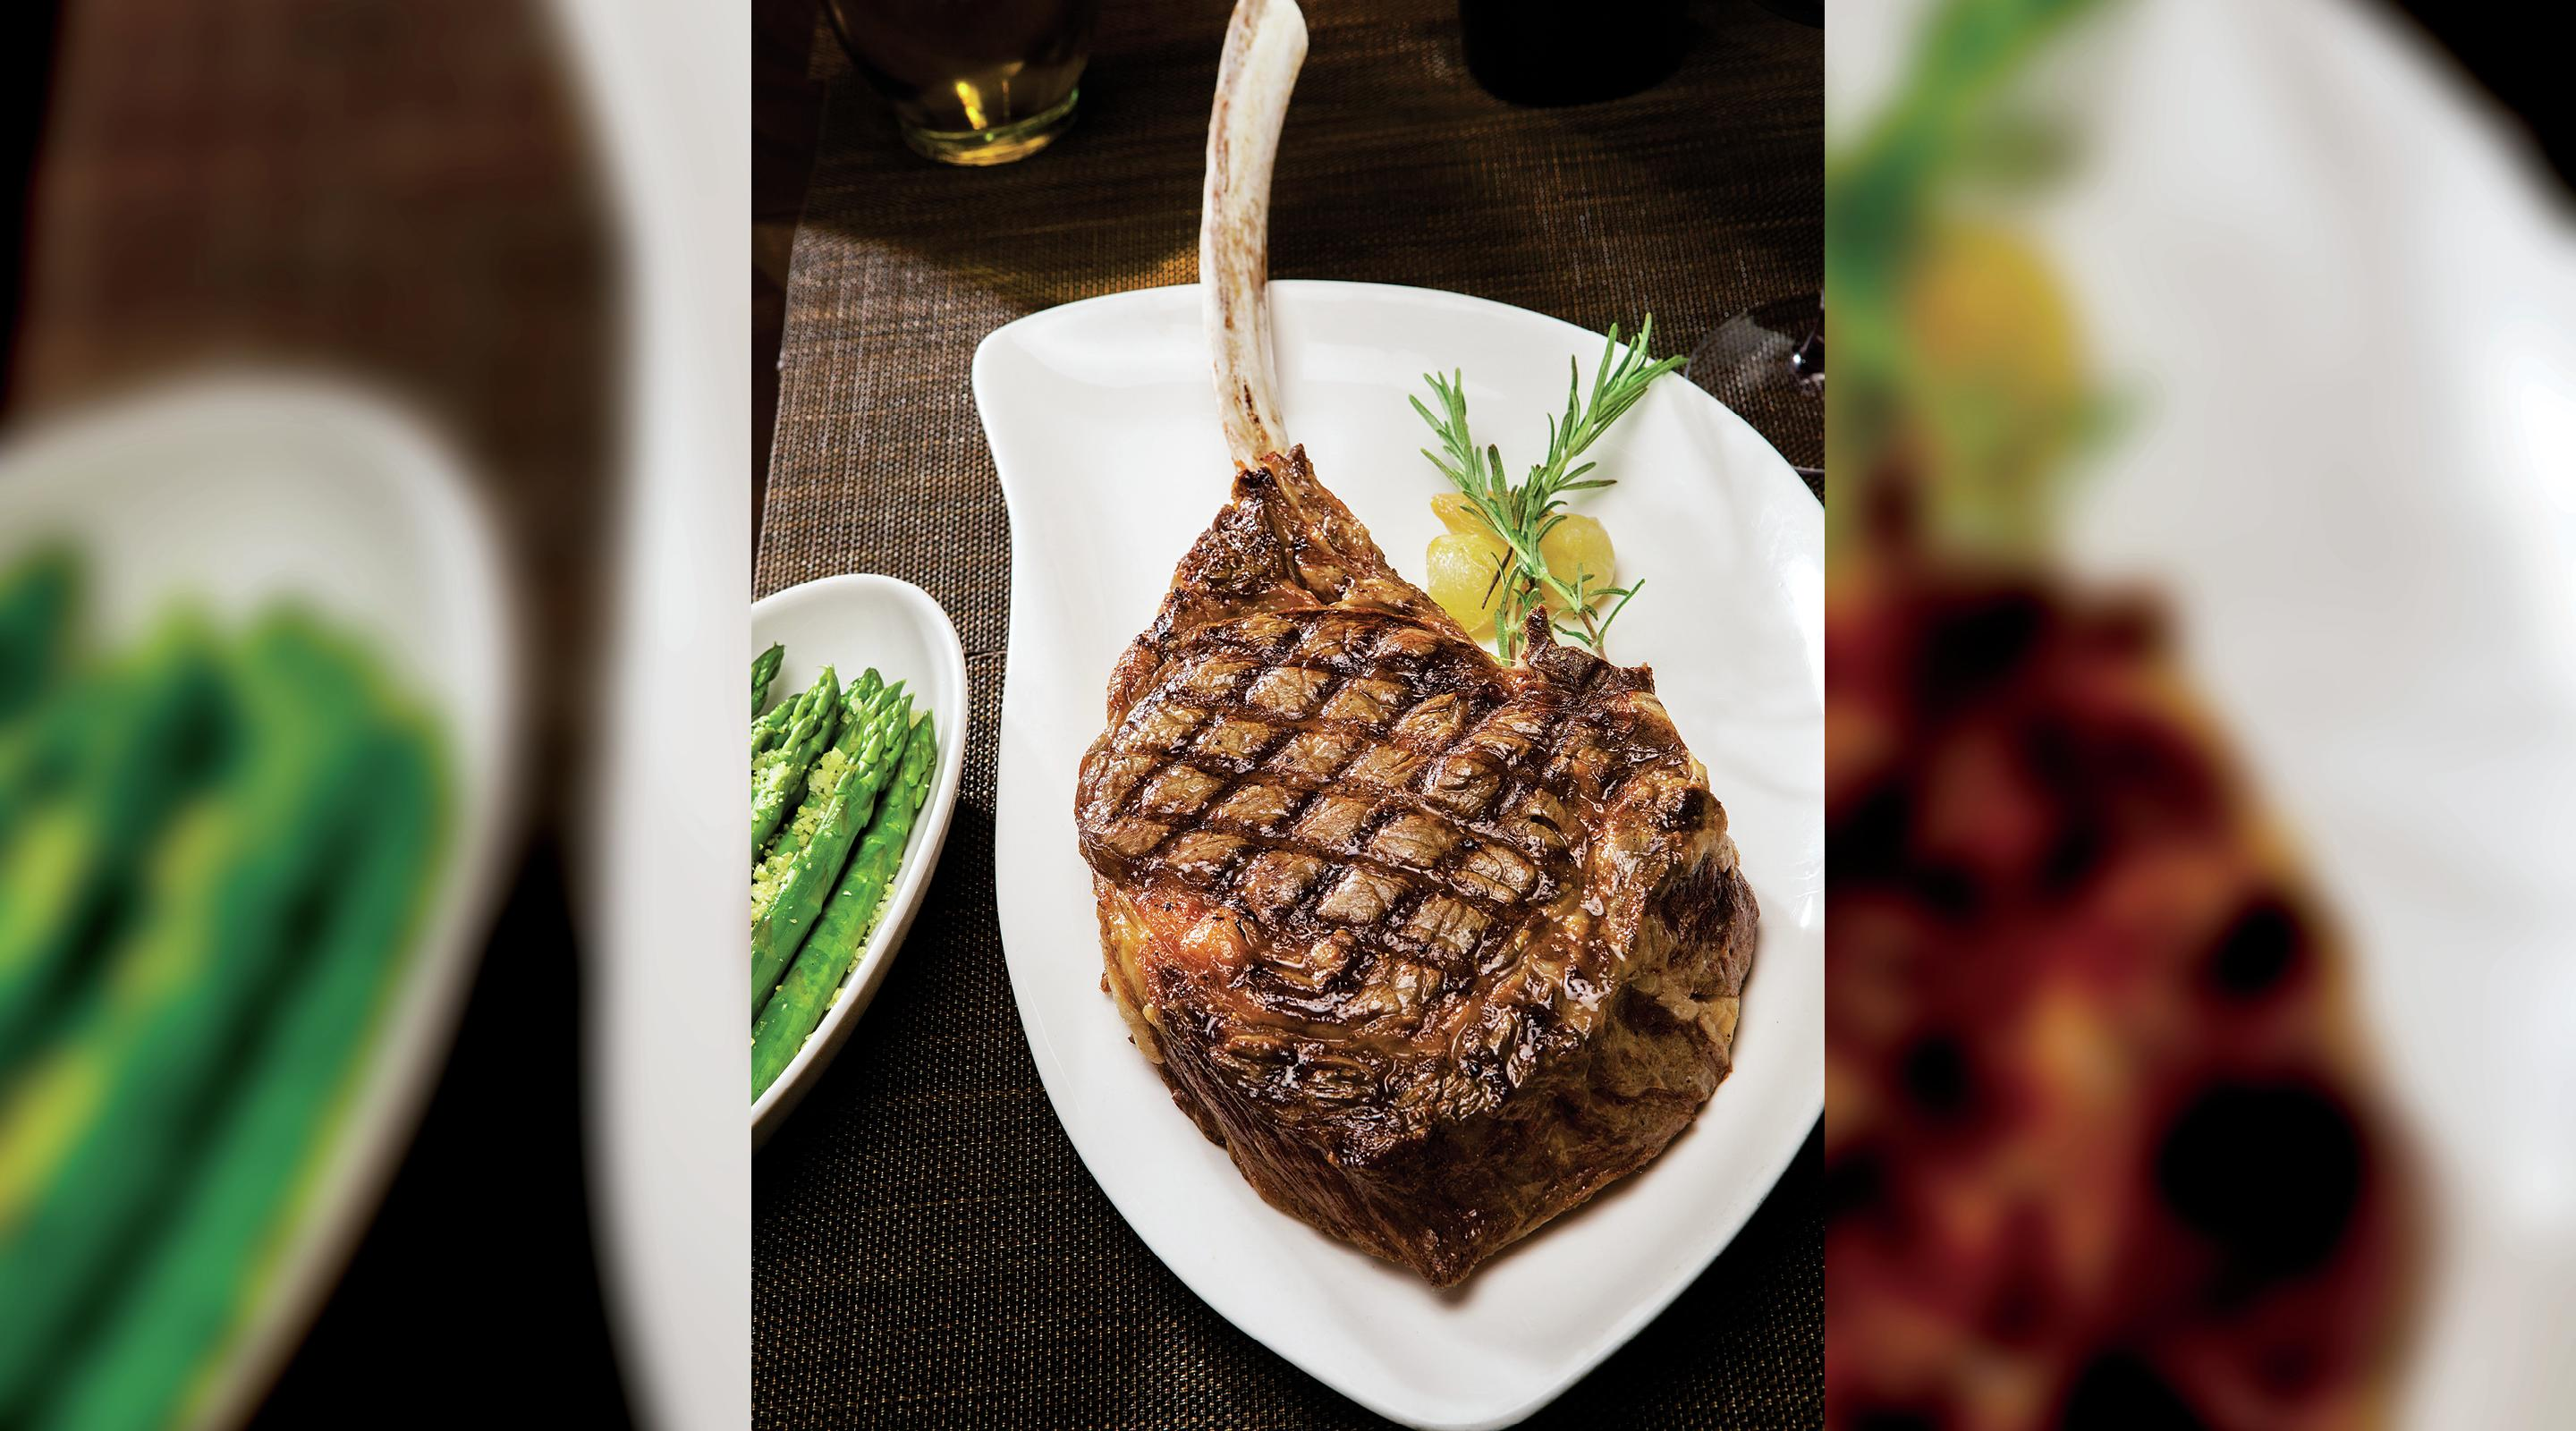 Tomahawk Ribeye for two at Tender Steak and Seafood.